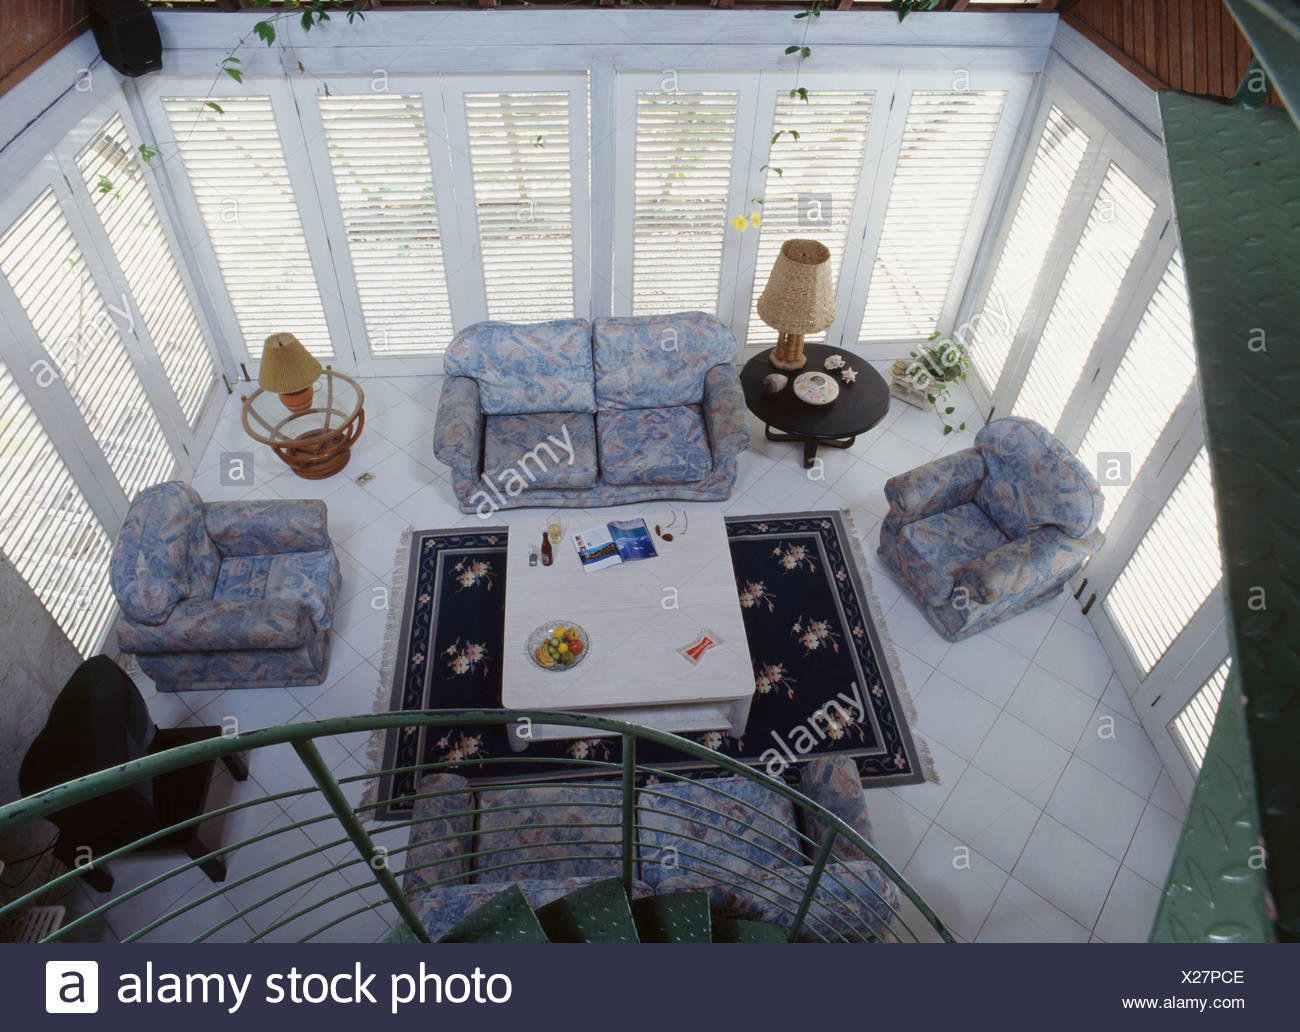 Aerial View Of Patterned Blue Sofa And Armchairs In Coastal Living